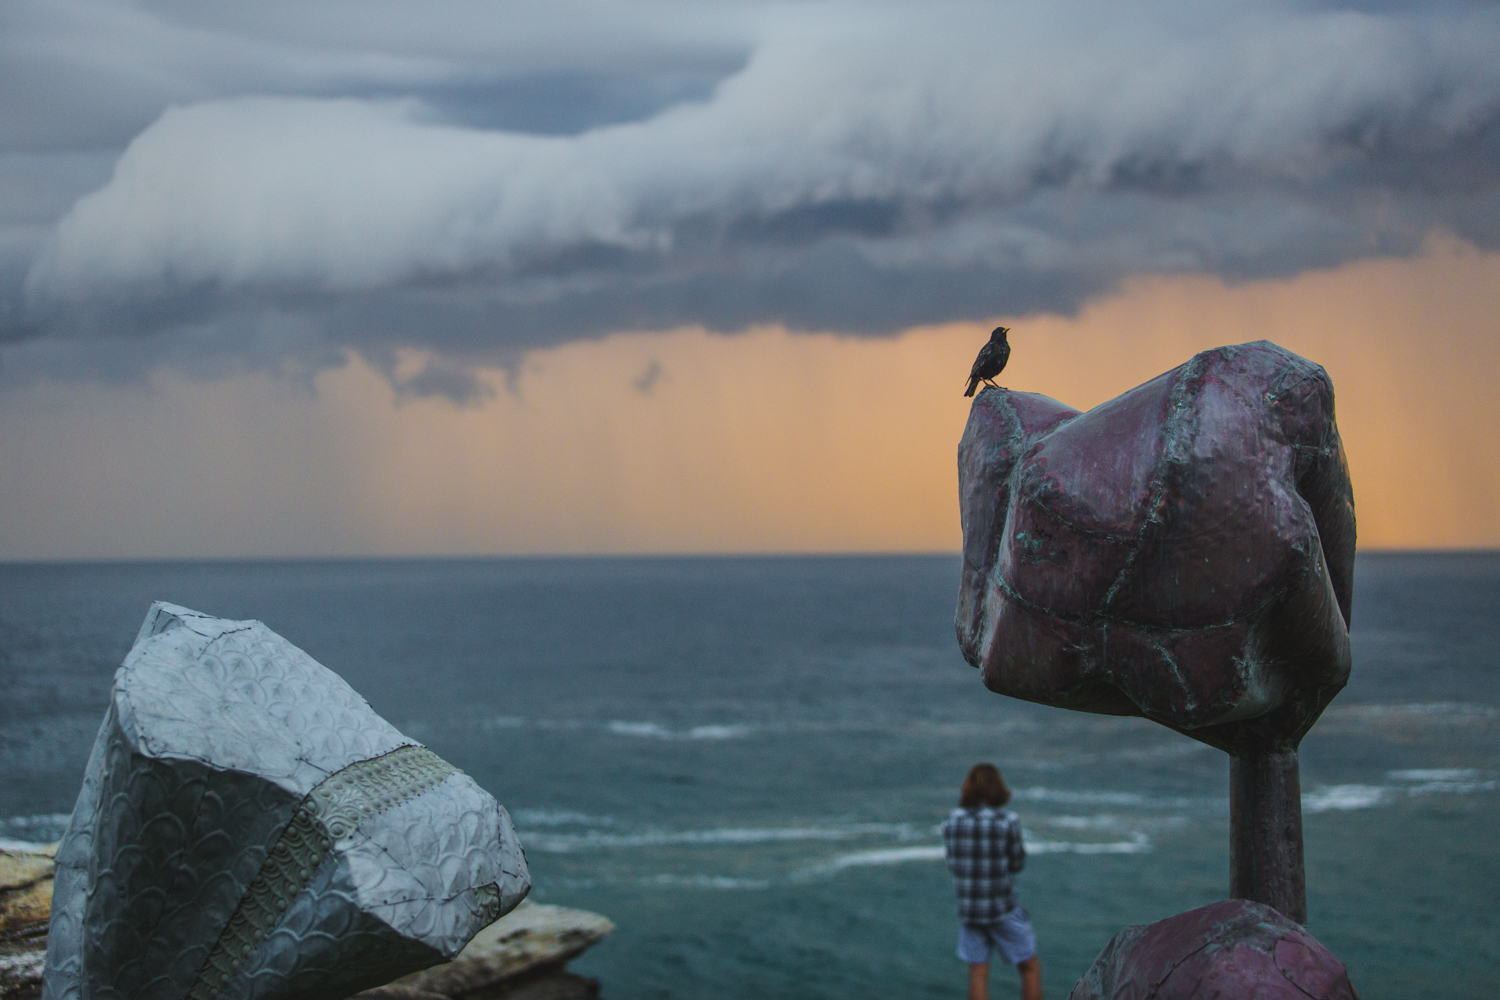 Deborah Sleeman, forest, Sculpture by the Sea, Bondi 2015. Photo Jessica Wyld